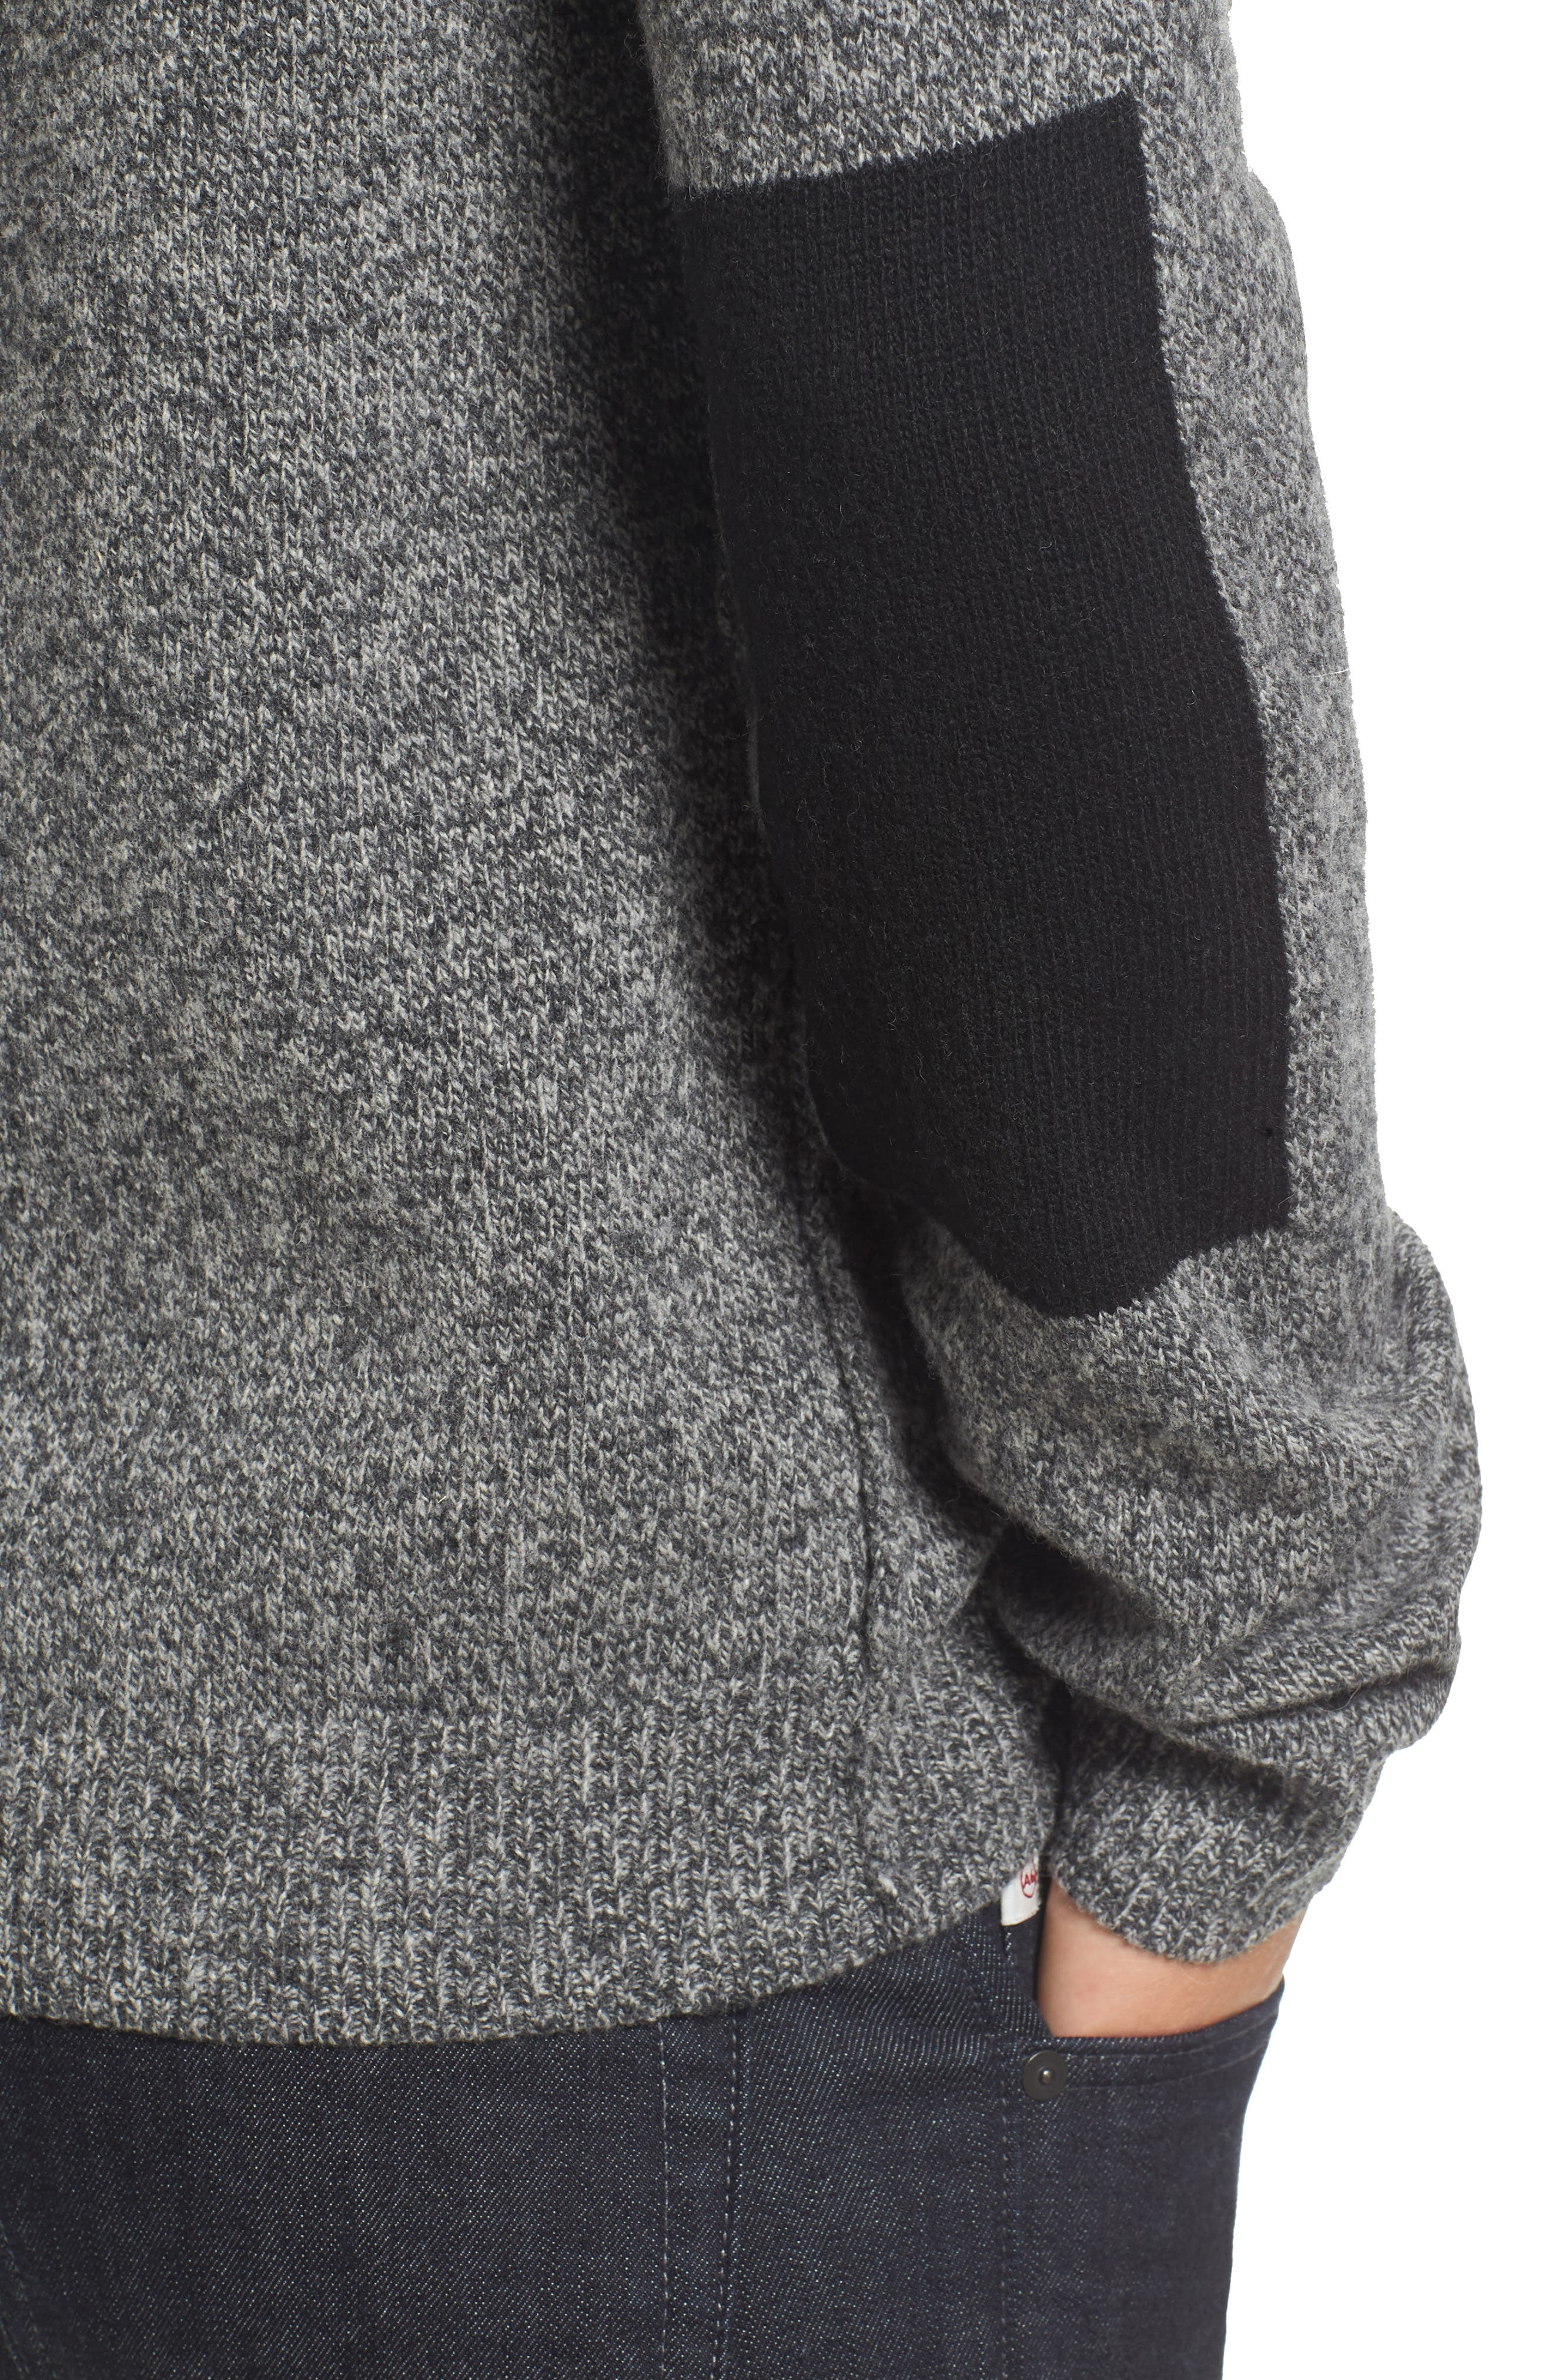 Elbow Patch Sweater,                             Alternate thumbnail 4, color,                             Charcoal Twist/ Black